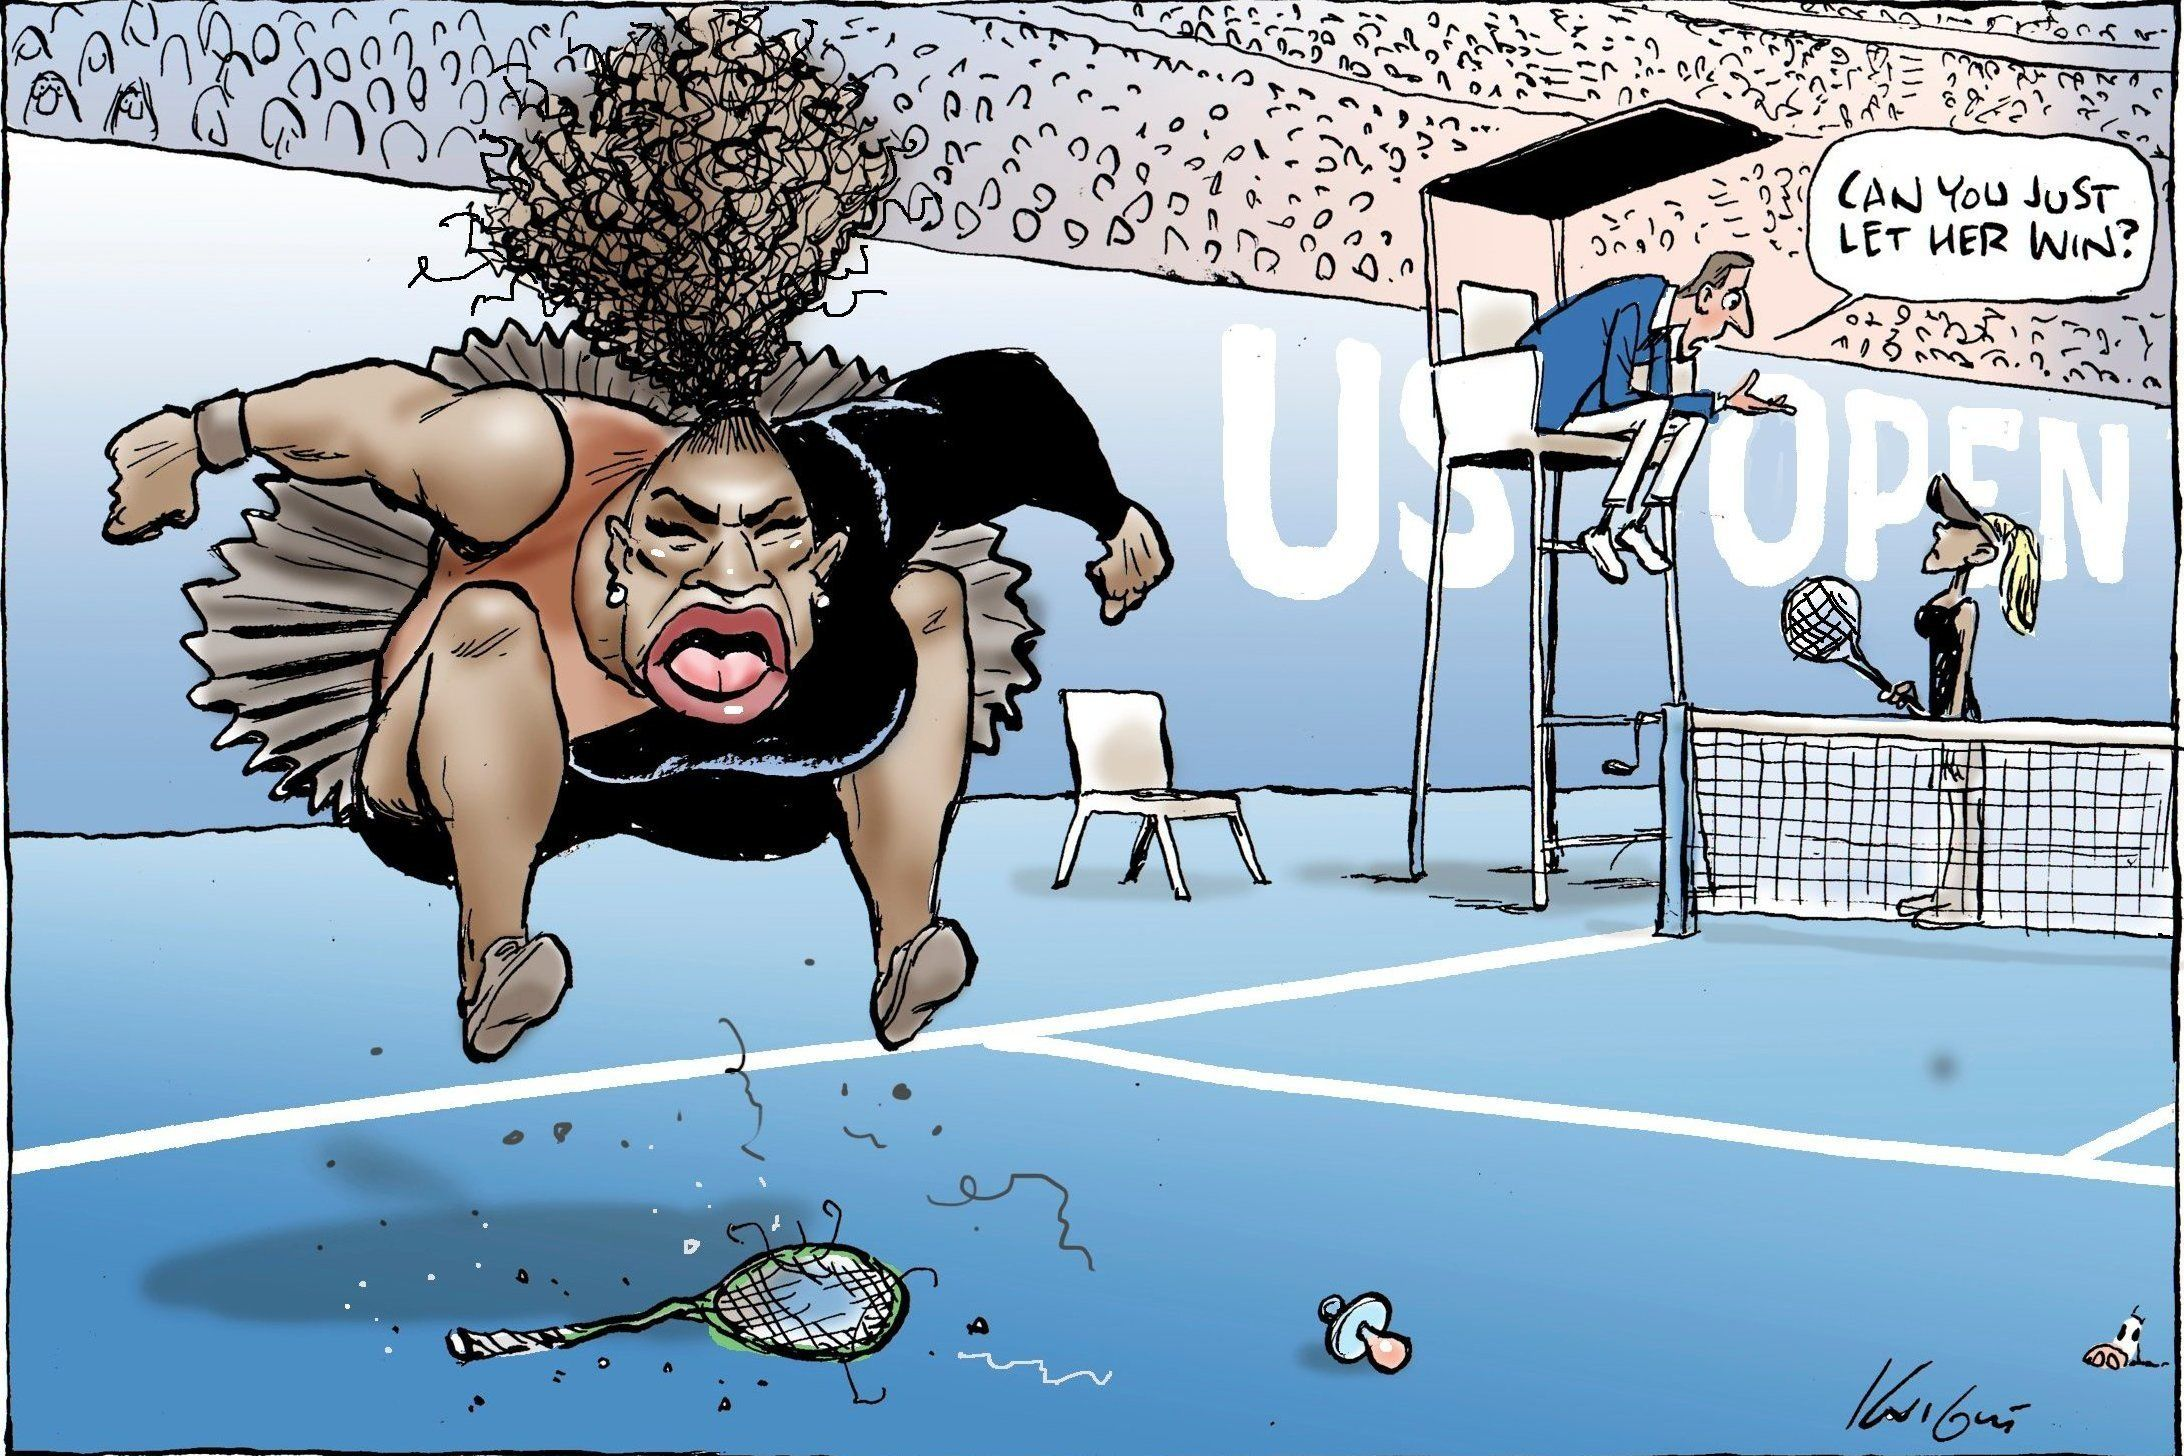 Controversial Serena Williams cartoon deemed not racist by media watchdog